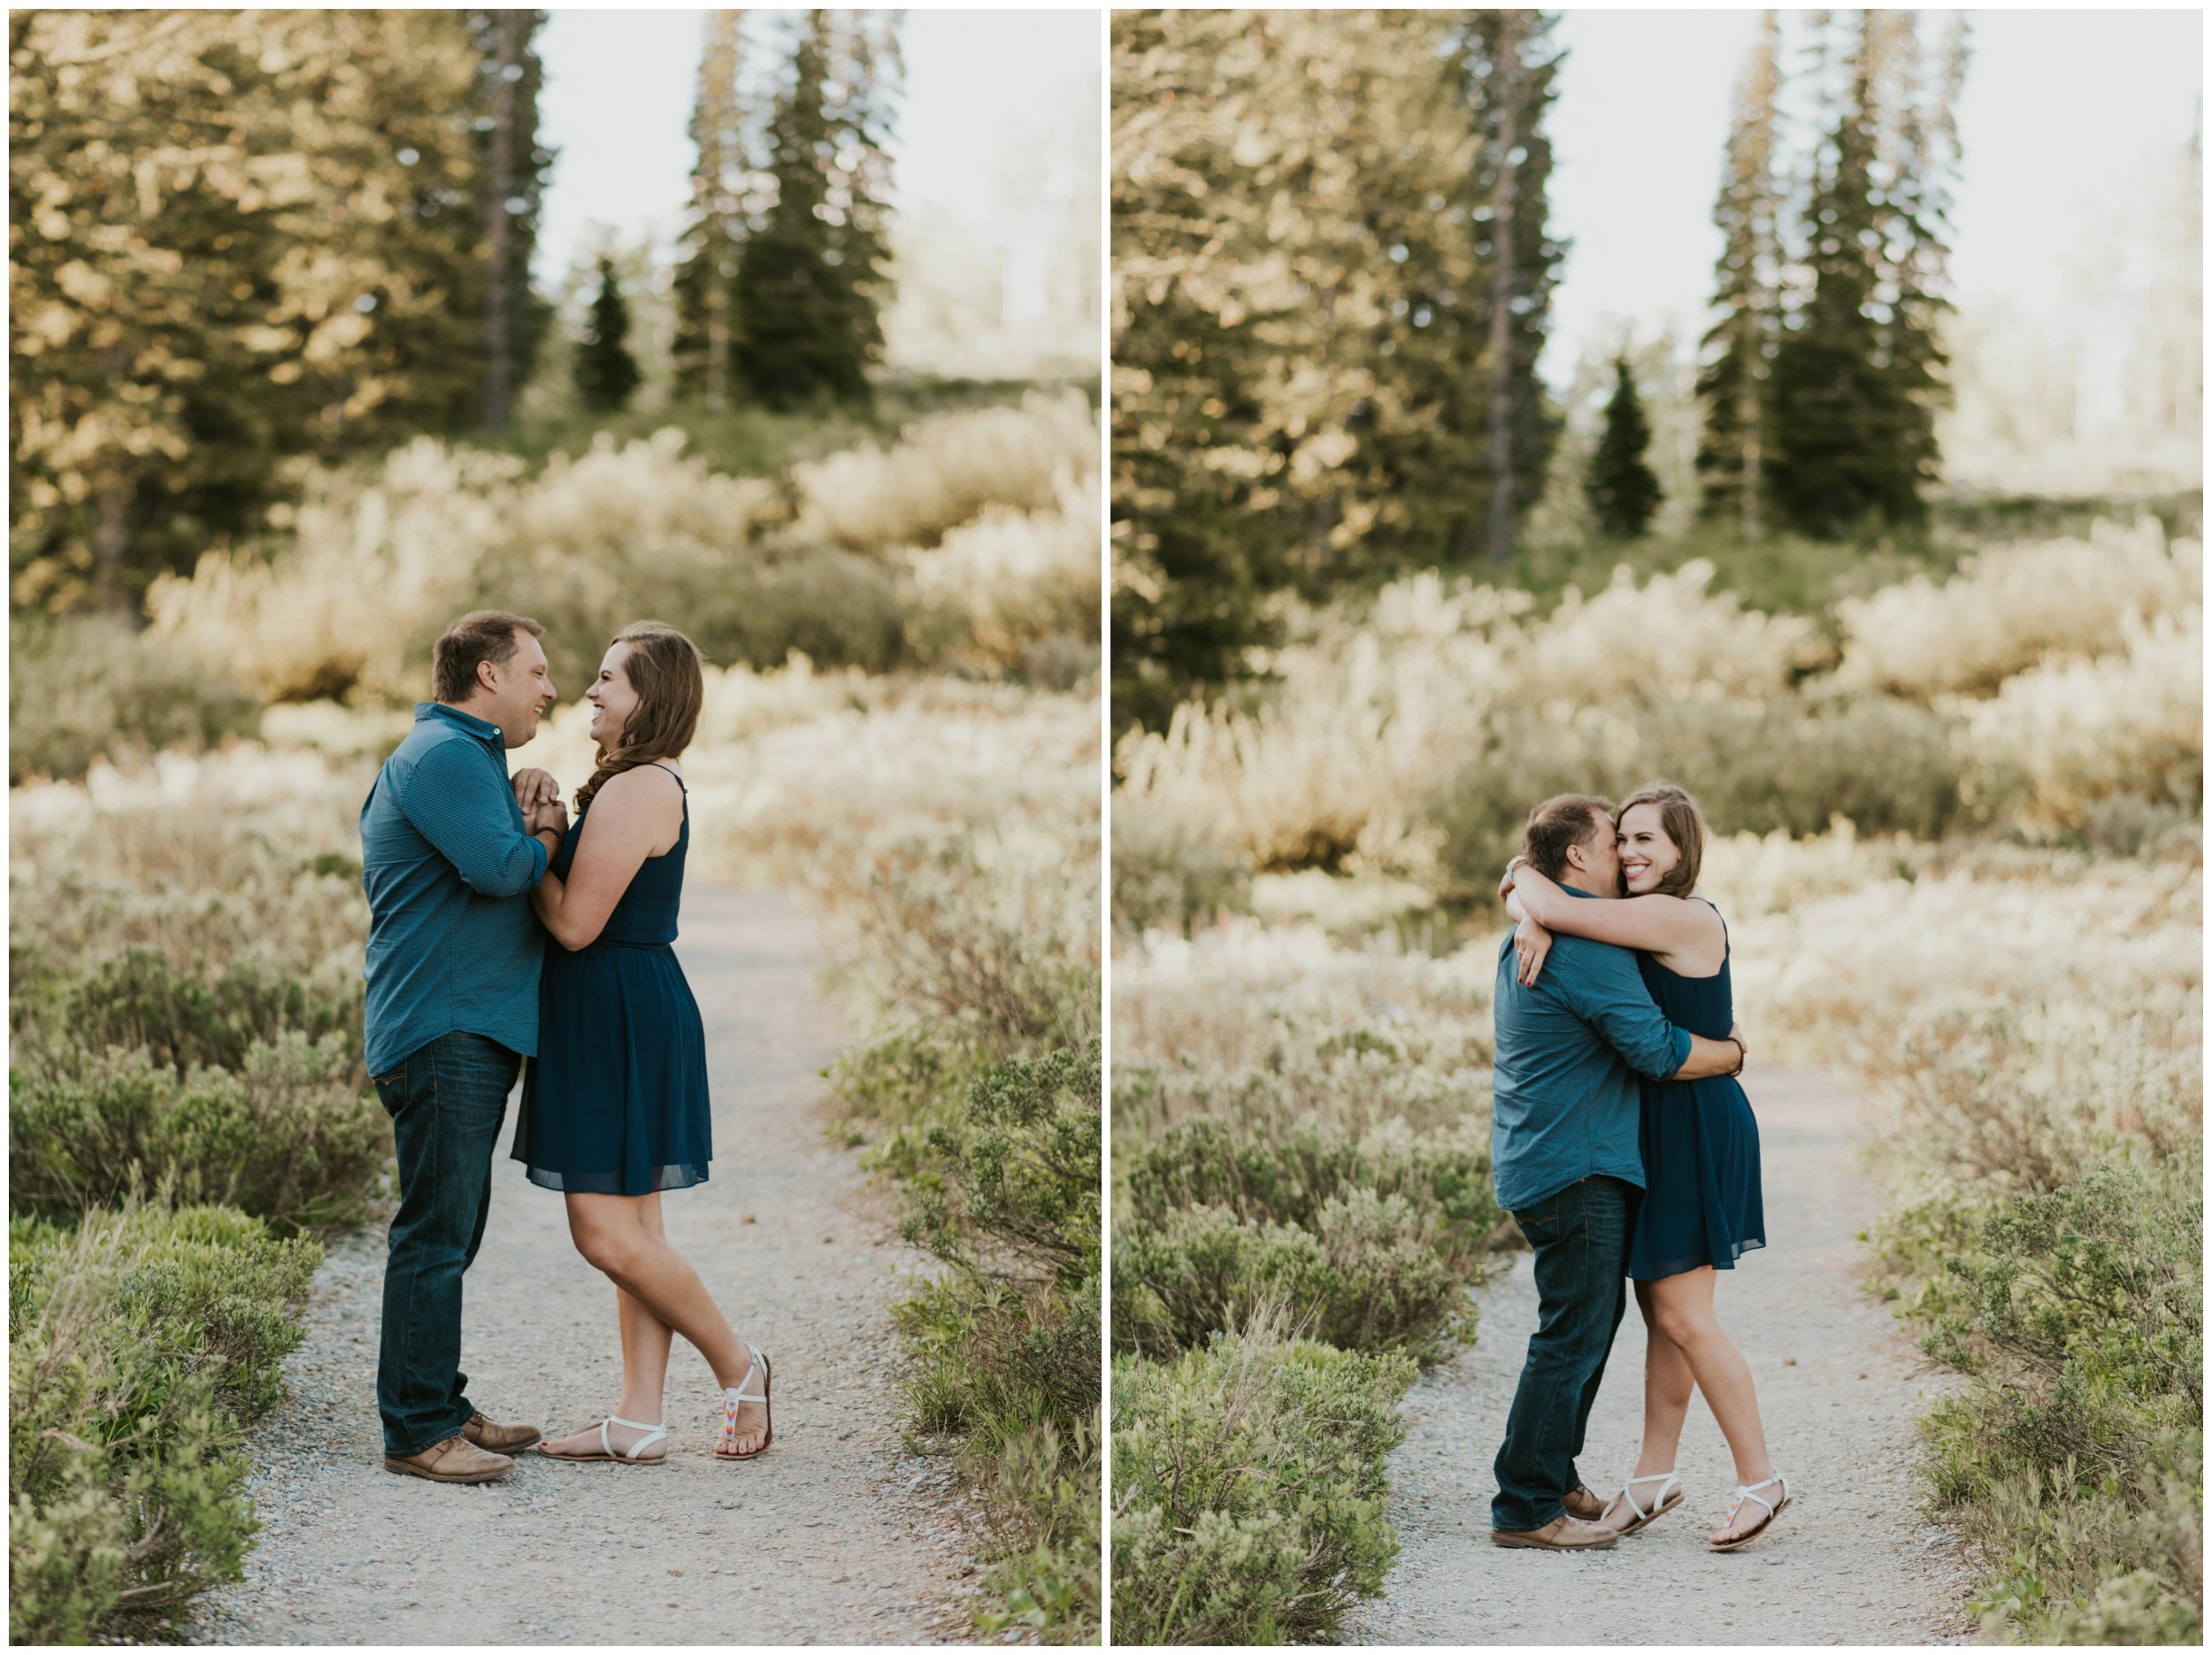 engagement photography at Tony grove campground Logan utah. Logan Utah Engagement & Wedding Photographer.